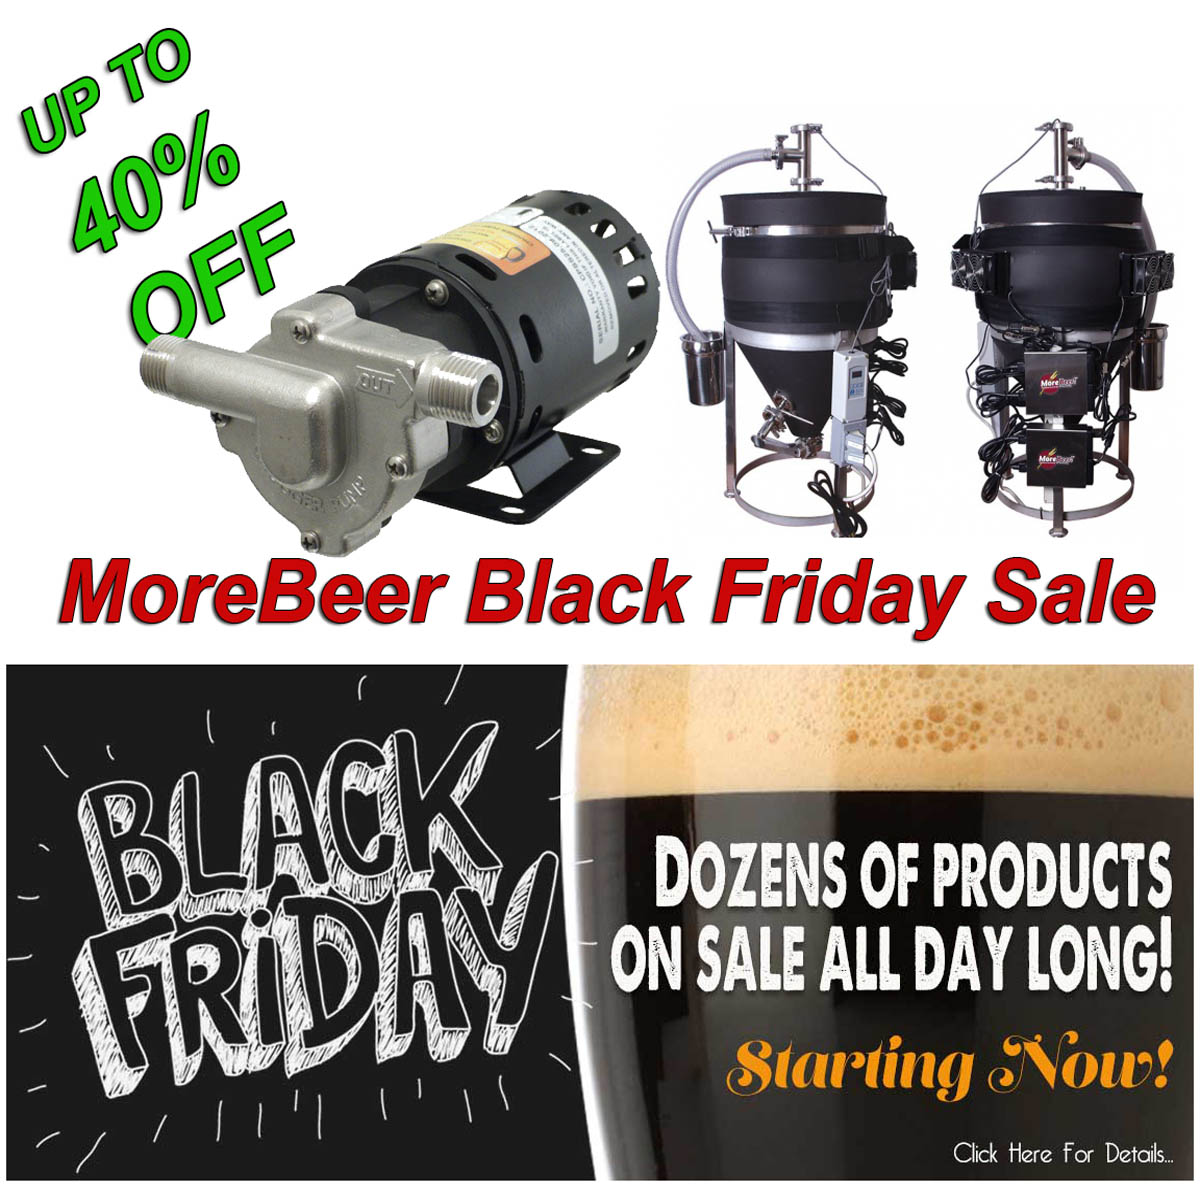 Home Wine Making Promo Codes for MoreBeer Black Friday Sale Going On Now Promo Codes